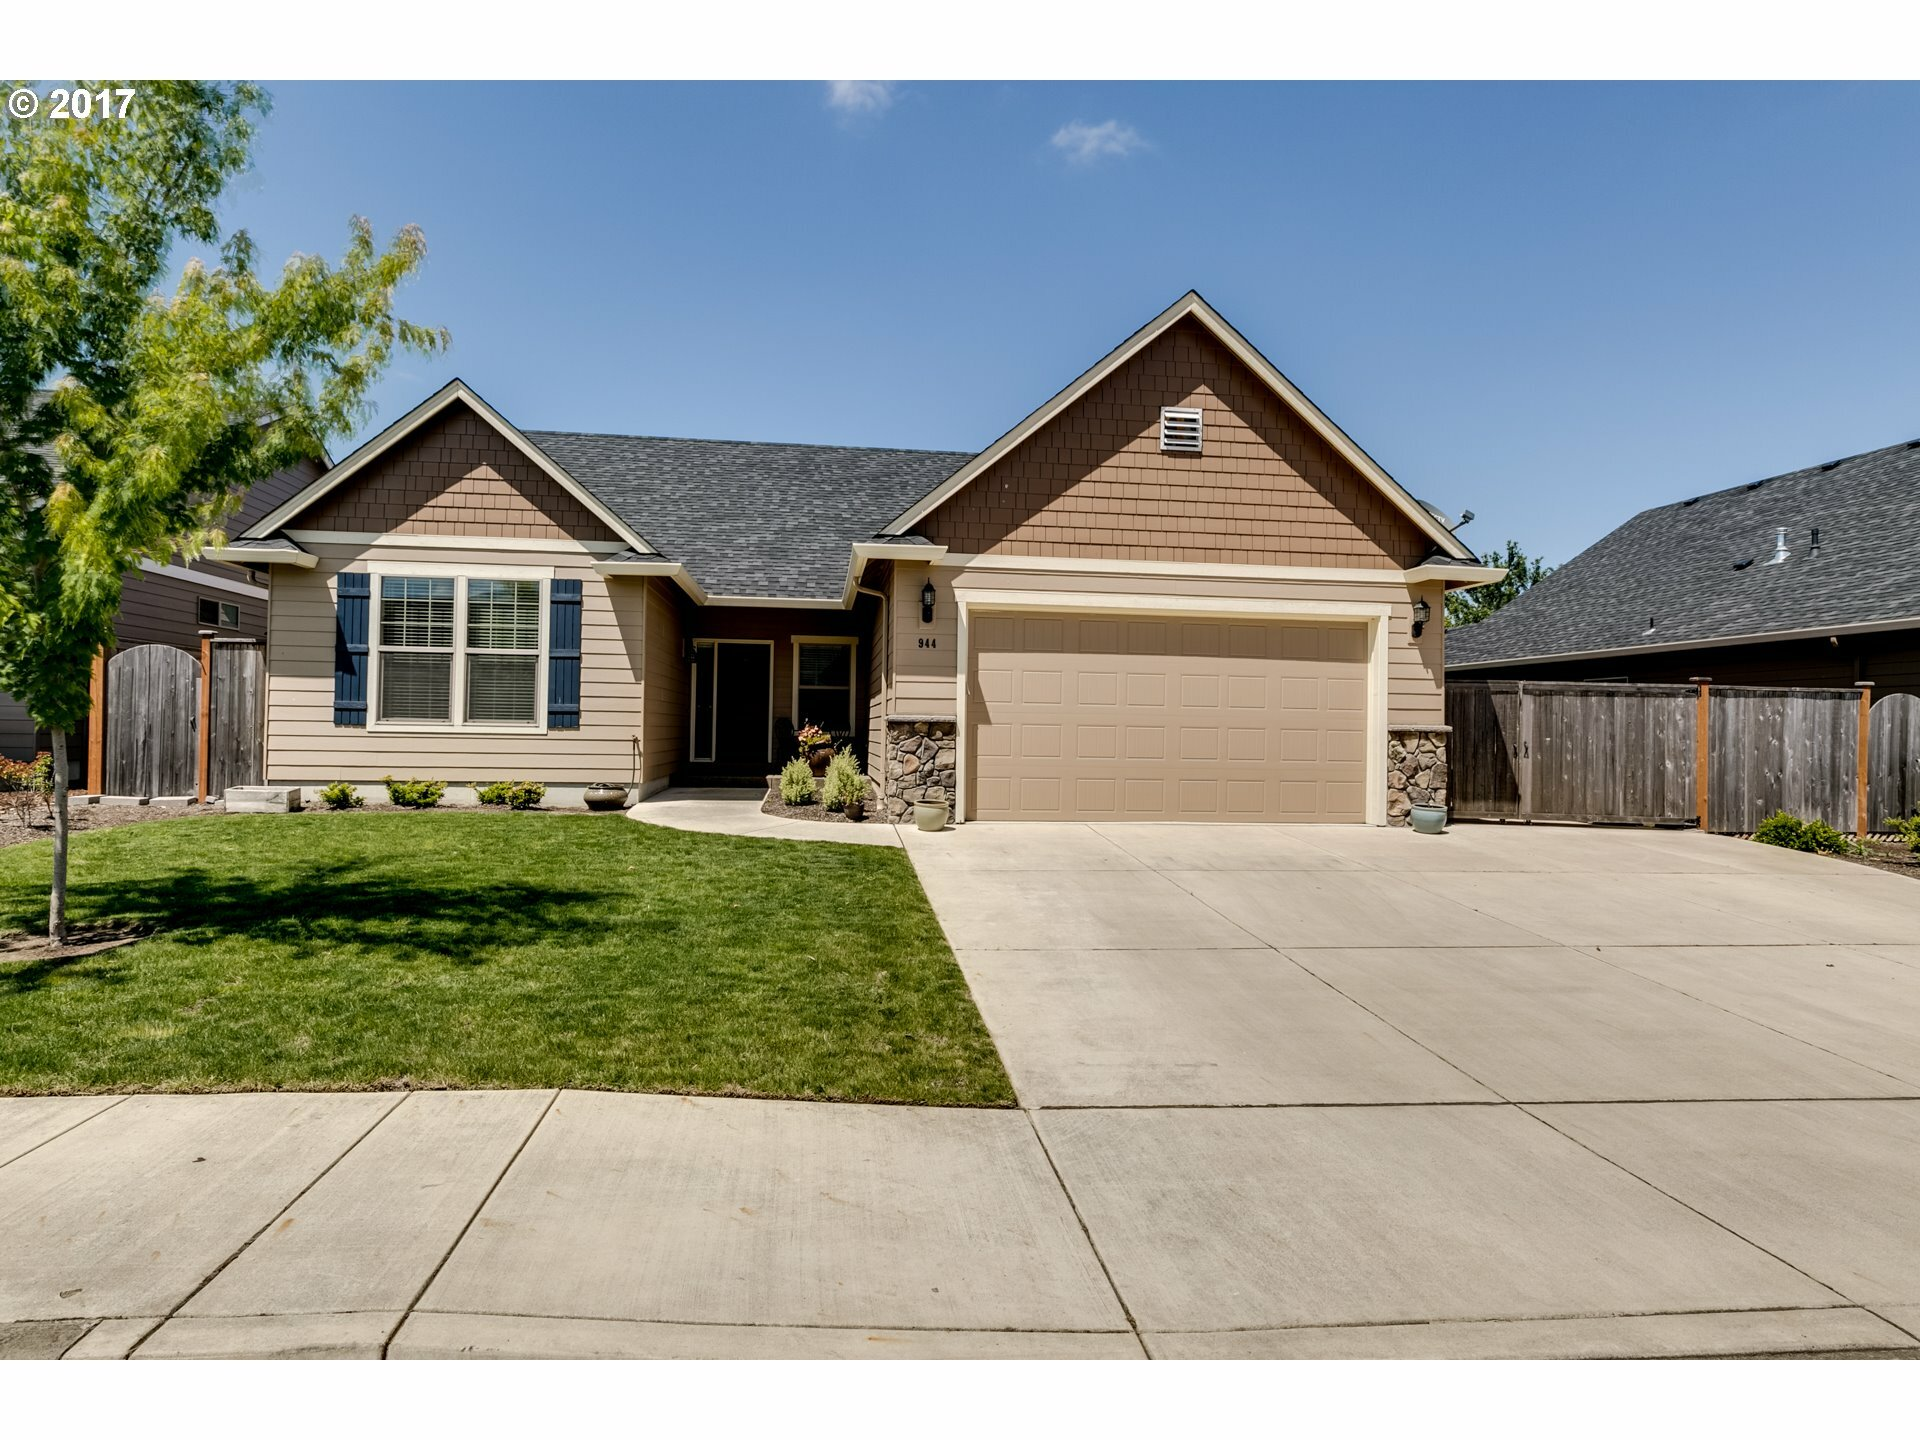 944 Kaylee Ave, Junction City, OR - USA (photo 1)